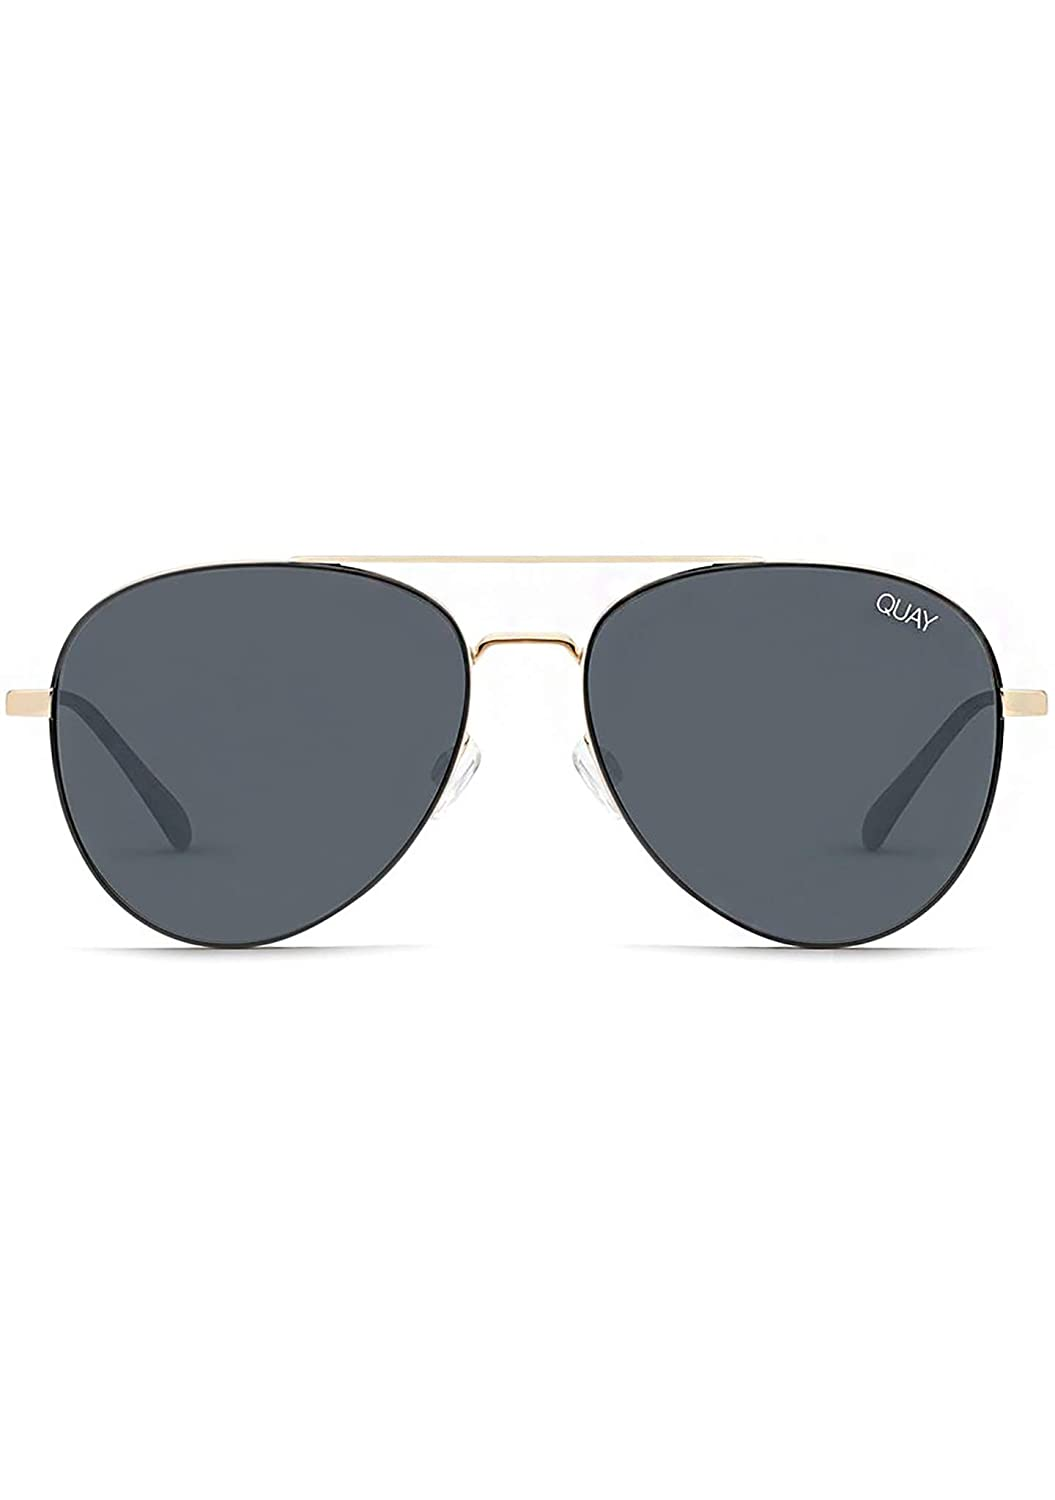 Amazon.com: Quay Australia Single Sunglasses in Black Smoke ...